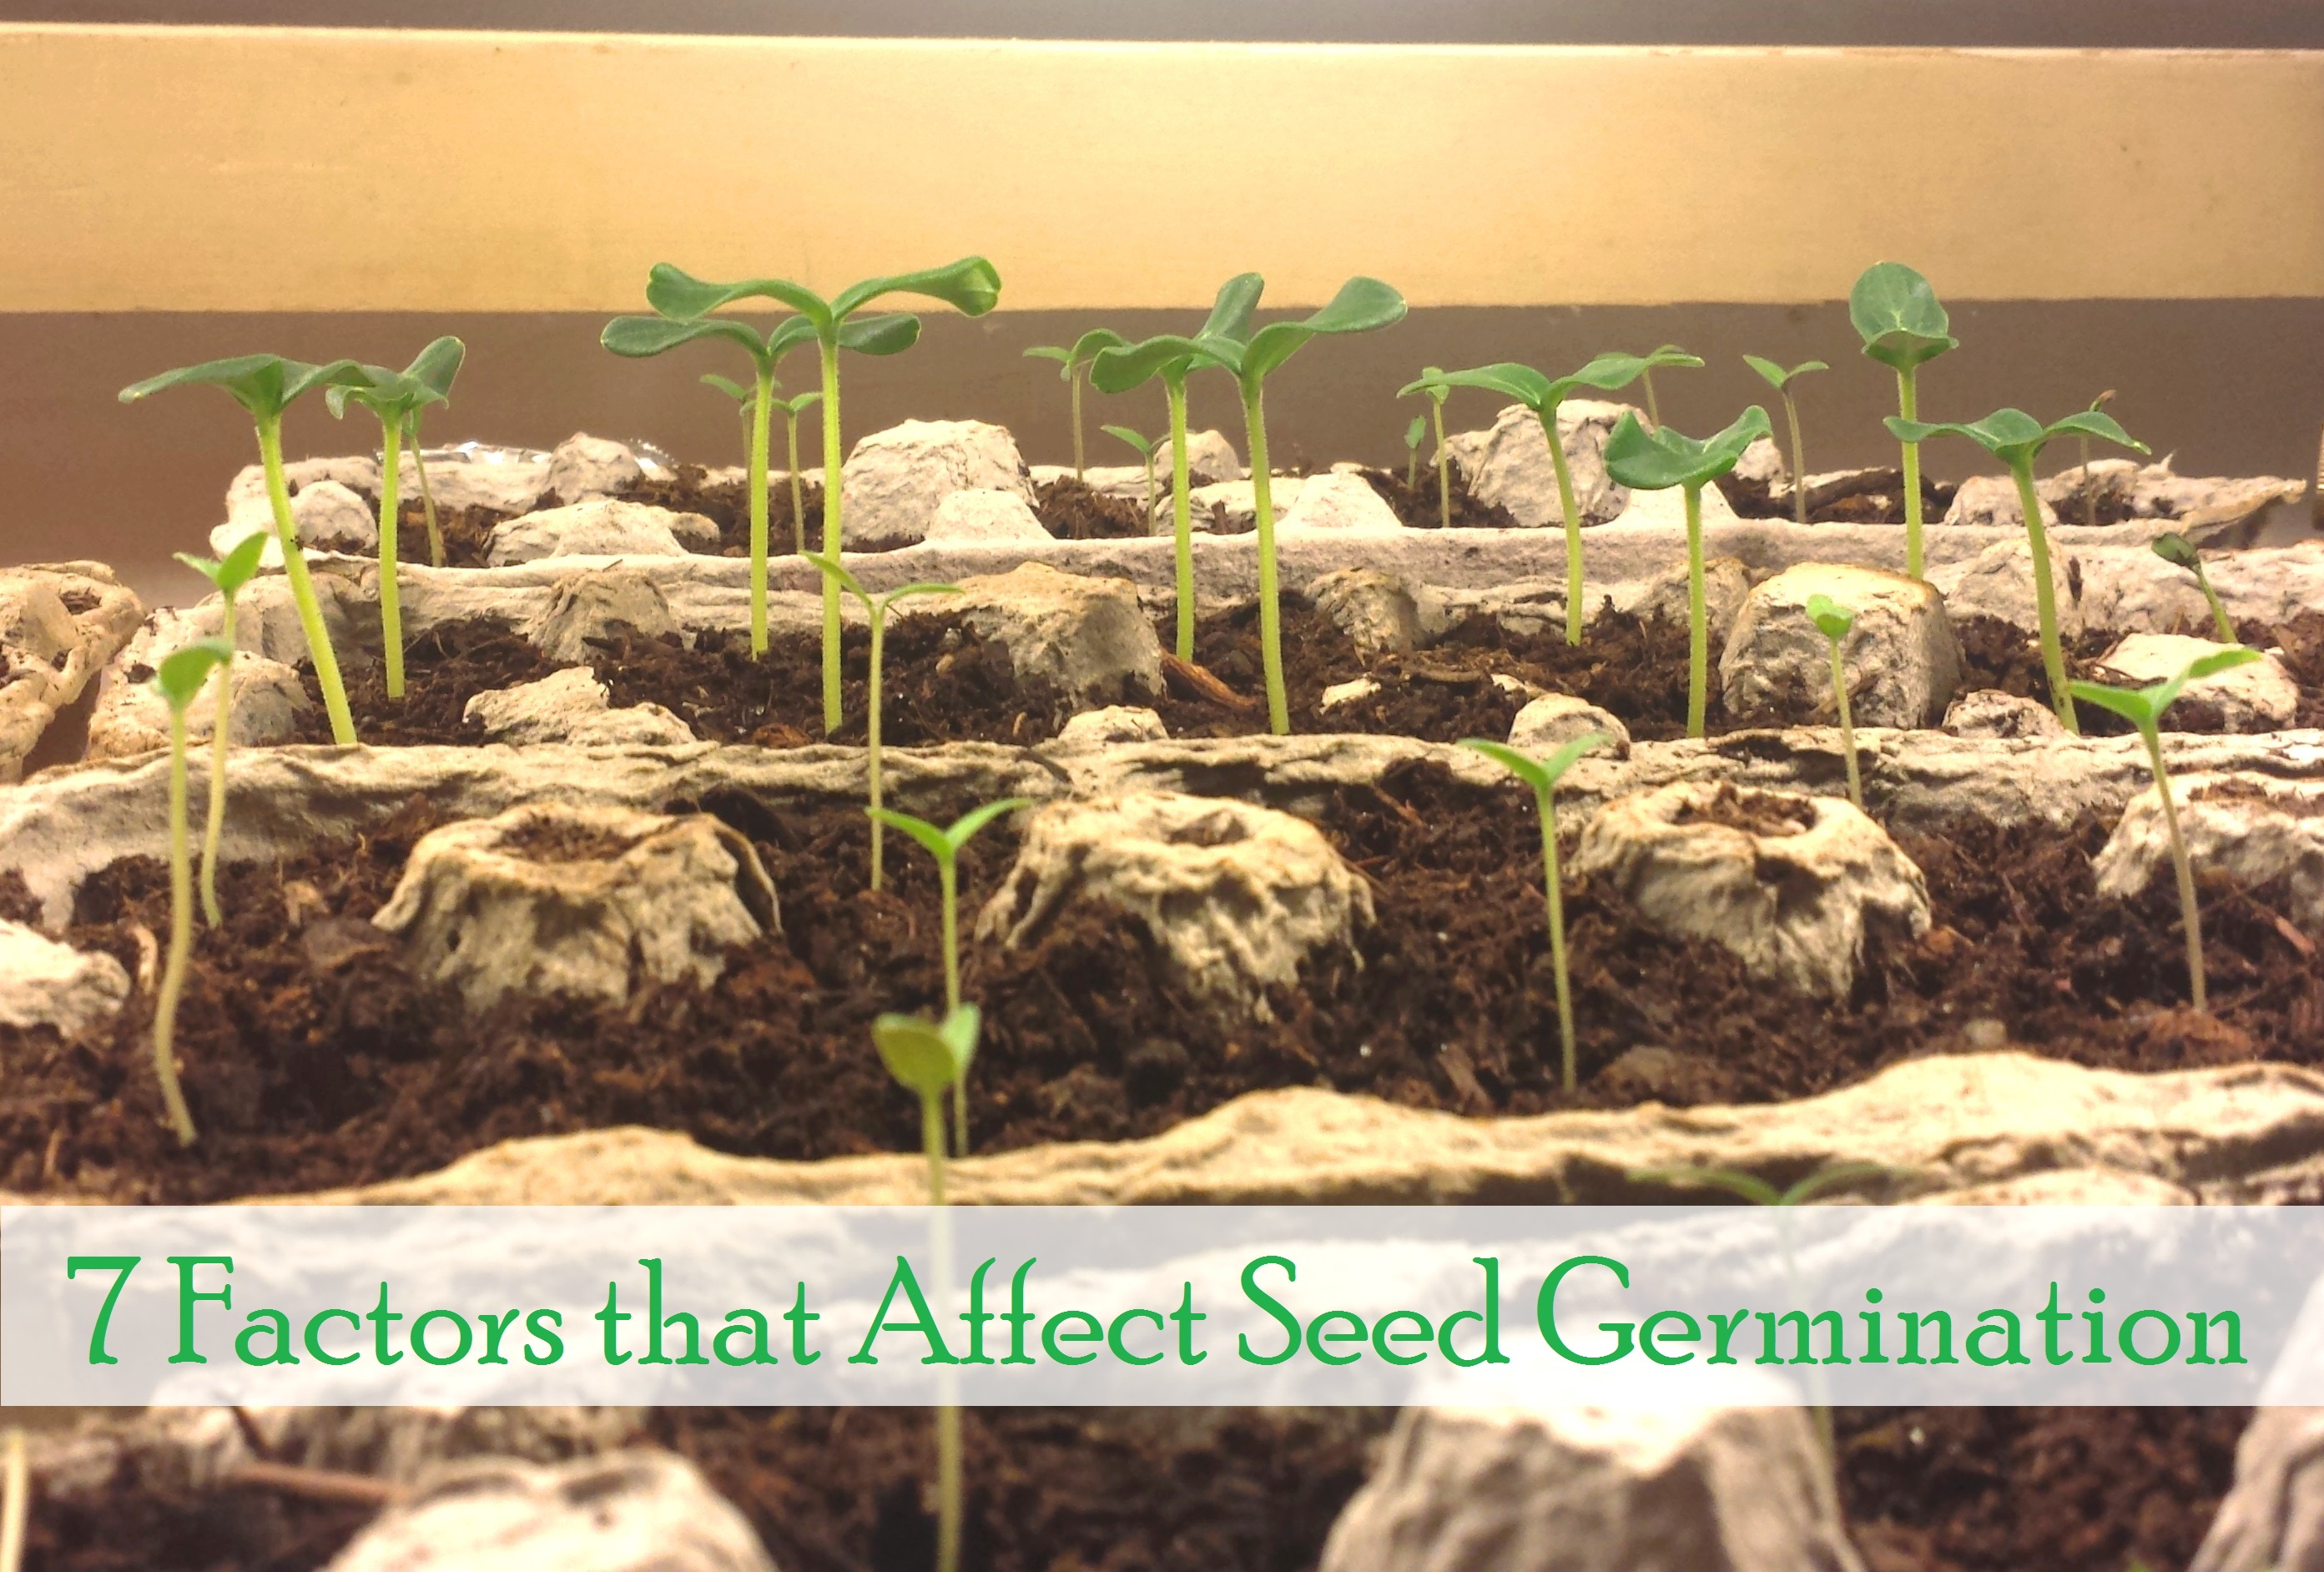 Germinated grain - who will benefit, and who only hurt